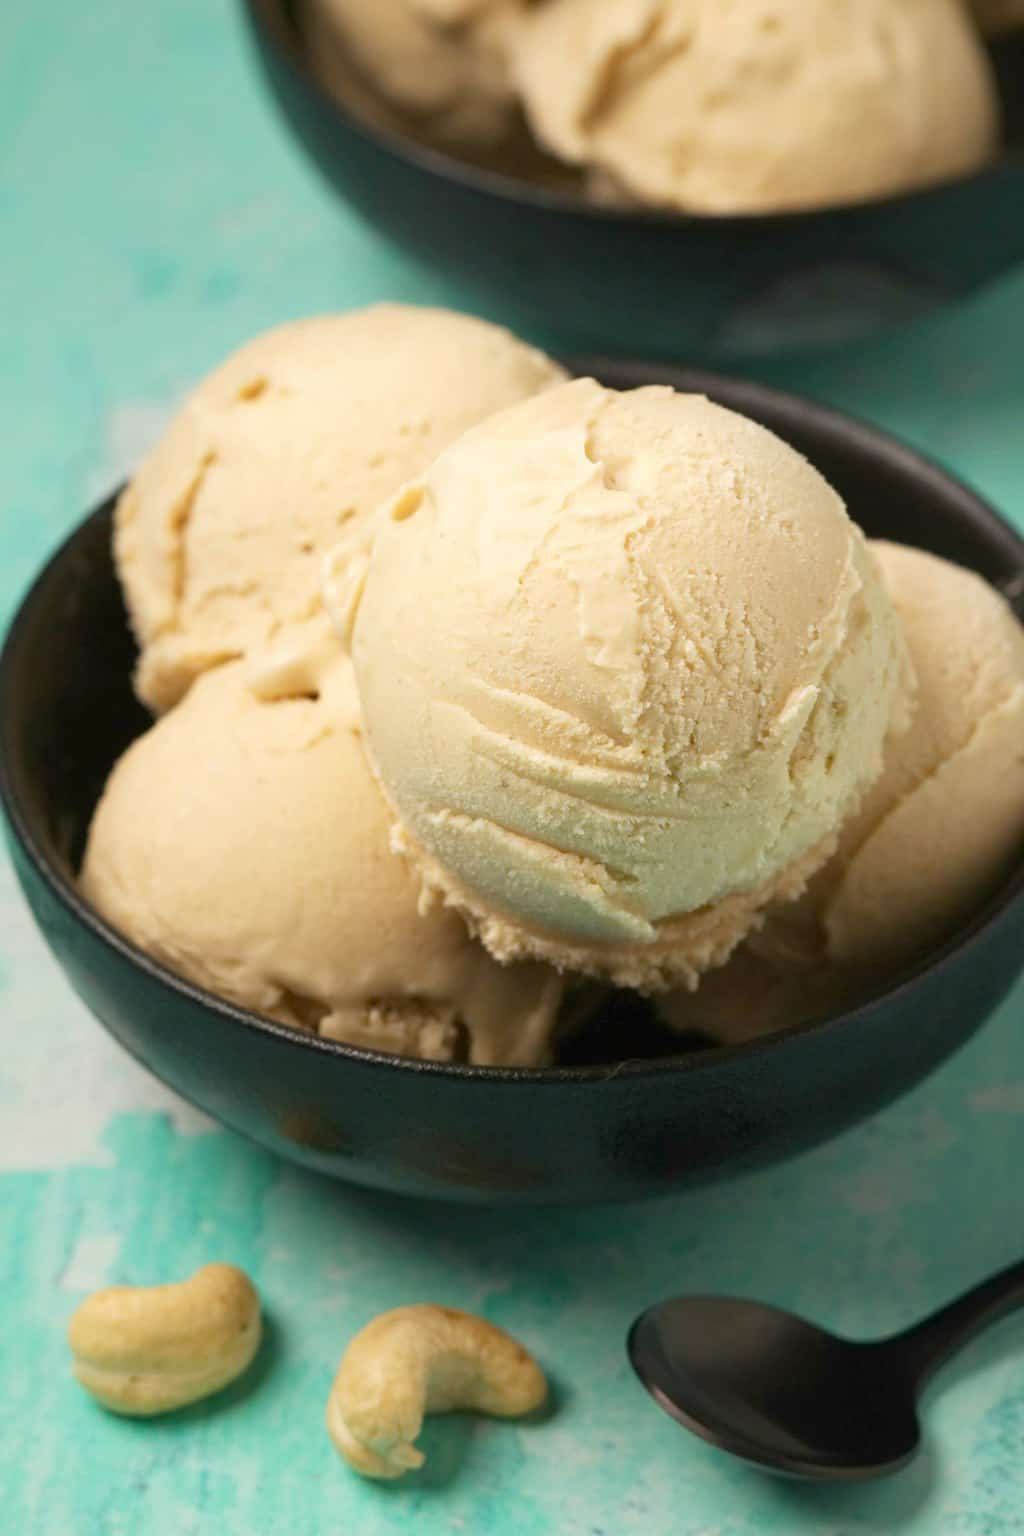 Cashew ice cream scoops in a black bowl with a spoon.